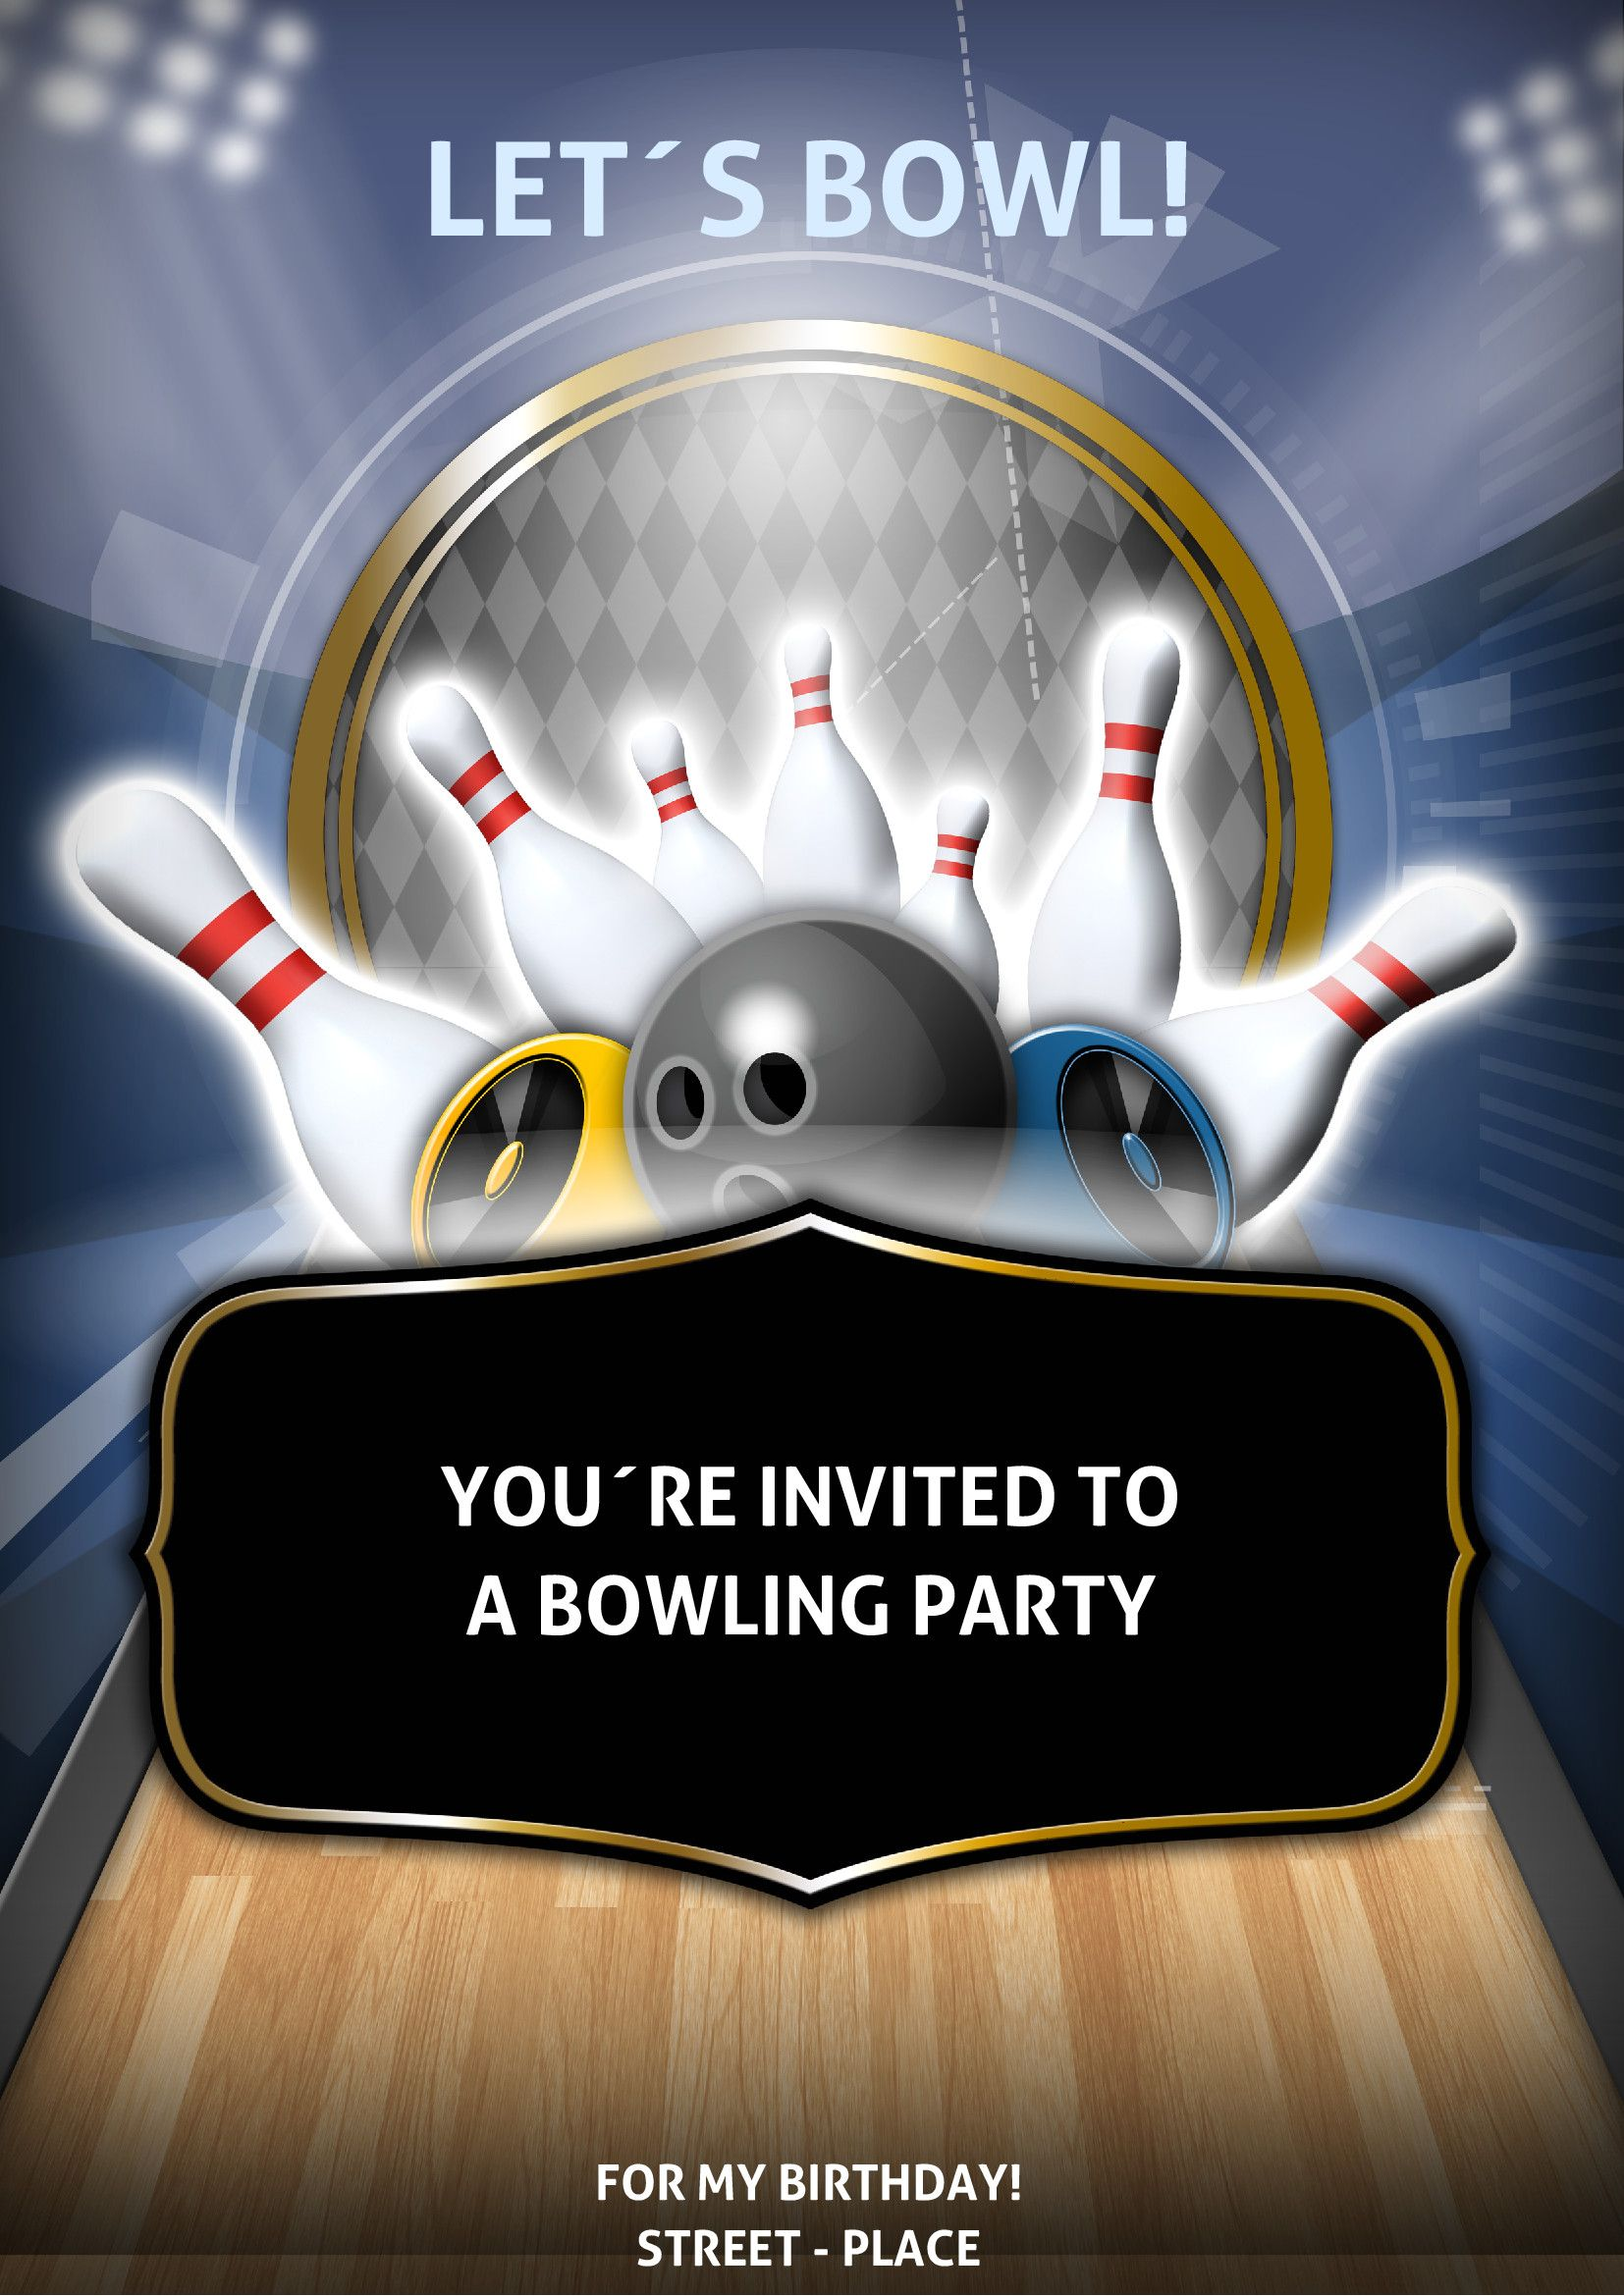 Bowling Flyer Is Just Like A Sports Flyer And It May Be Use To